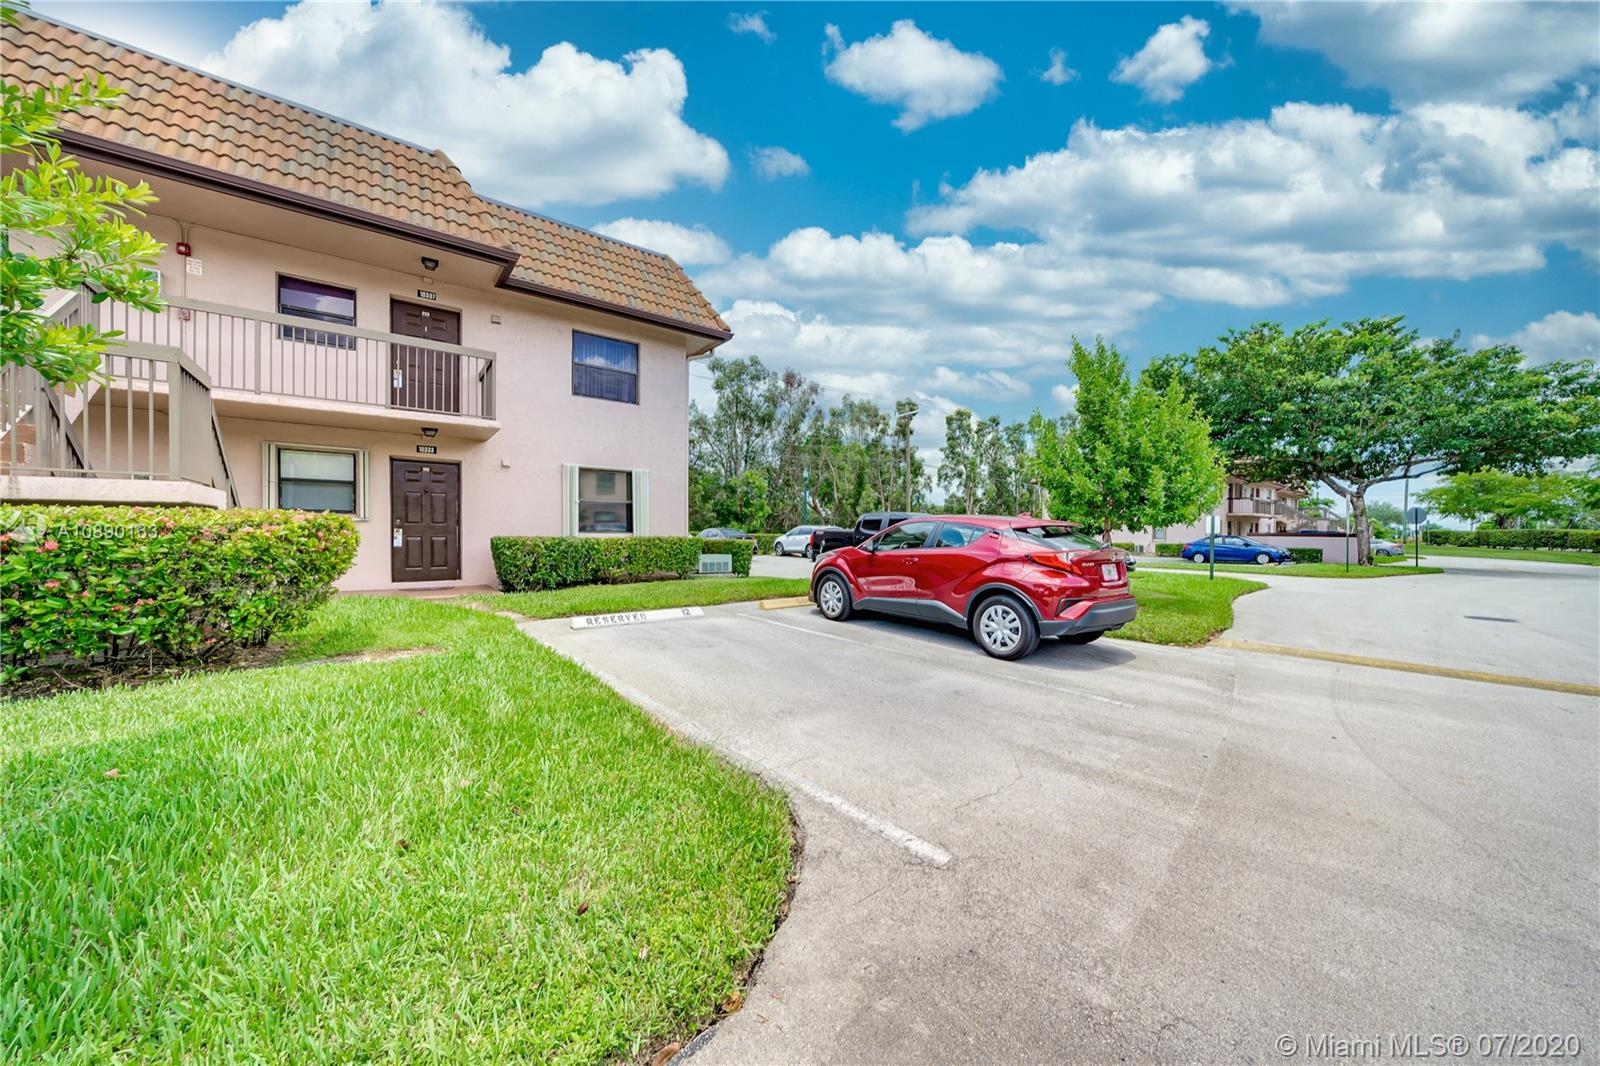 Great updated 2 bed /2 bath first-floor corner unit in beautiful Fairview at Pembroke Pointe. Amenities include pool, tennis, car-wash area. Screened patio with storage, accordion shutters, Washer/Dryer, kitchen features newer stainless appliances. One assigned parking place in front of unit and tons of guest parking. Can be rented right away.